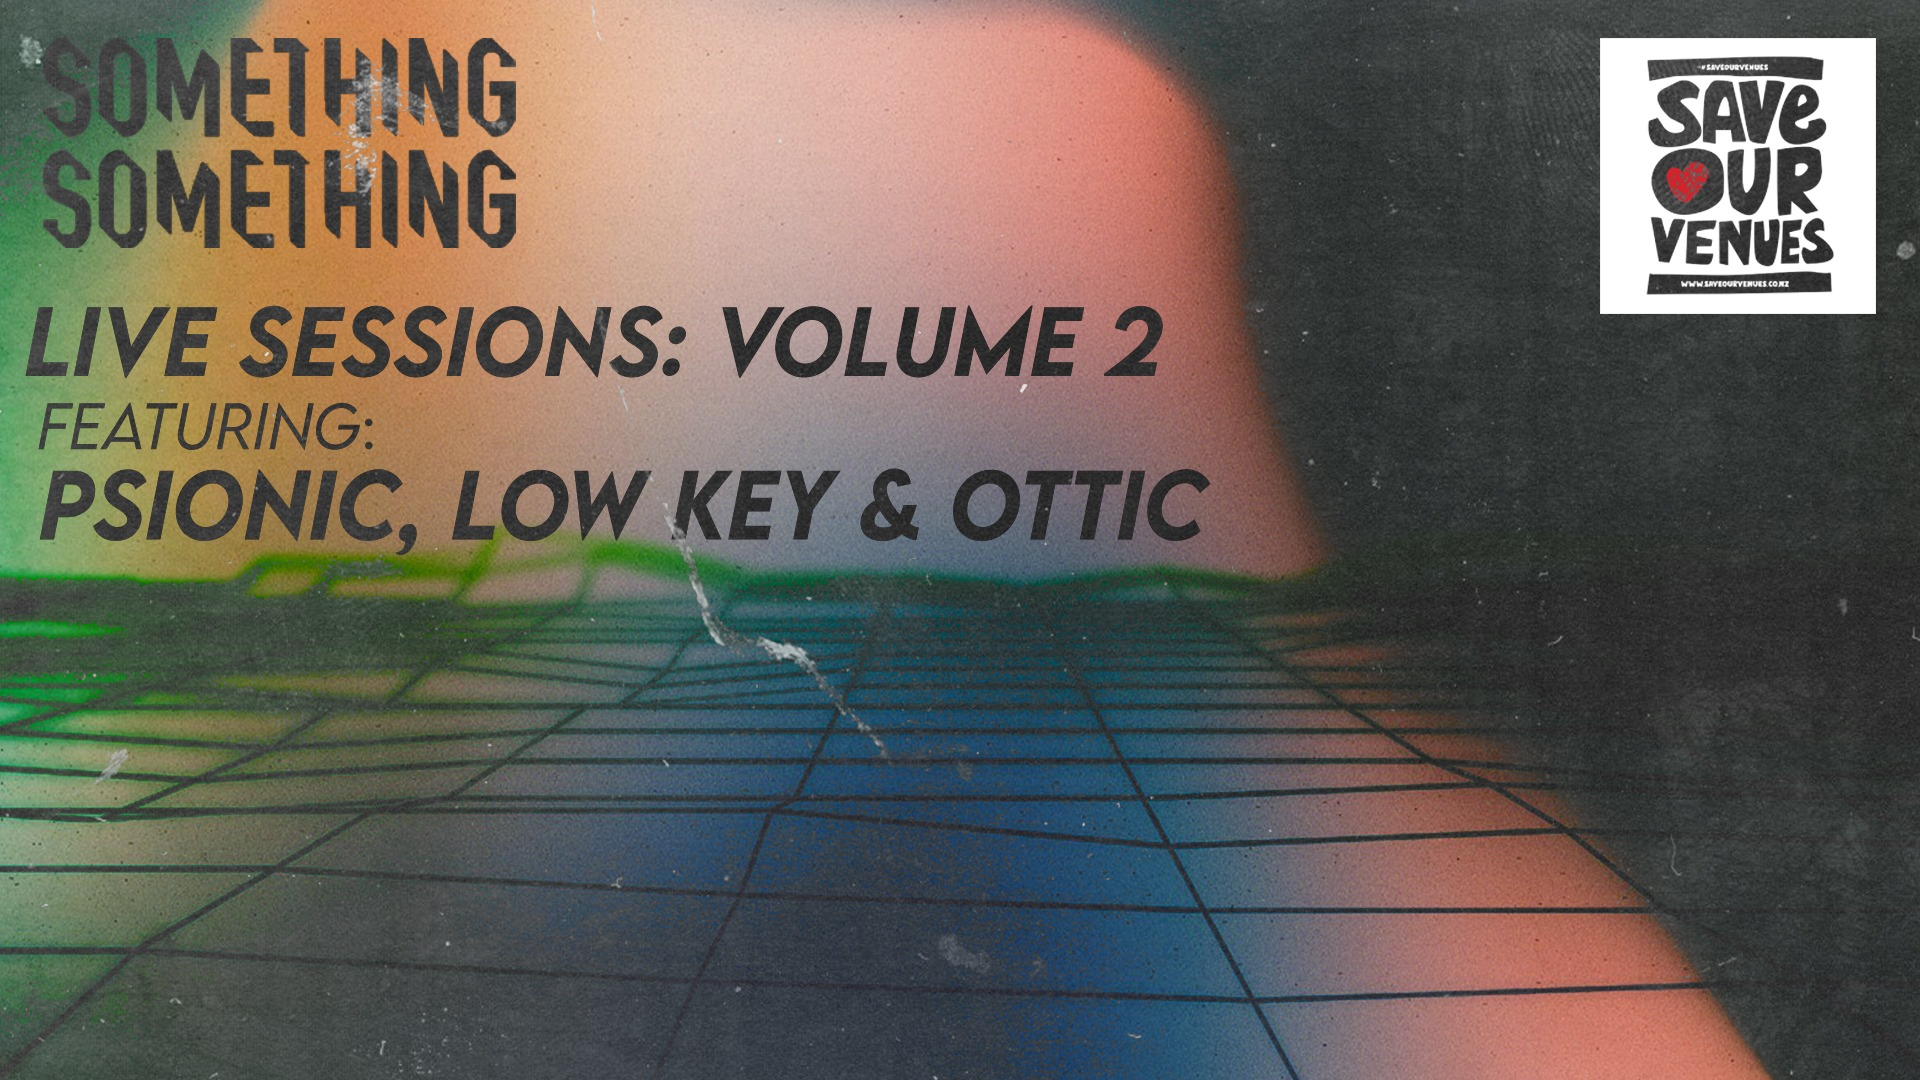 Something Something Live Sessions: Volume 2 - Psionic, Low Key And Ottic